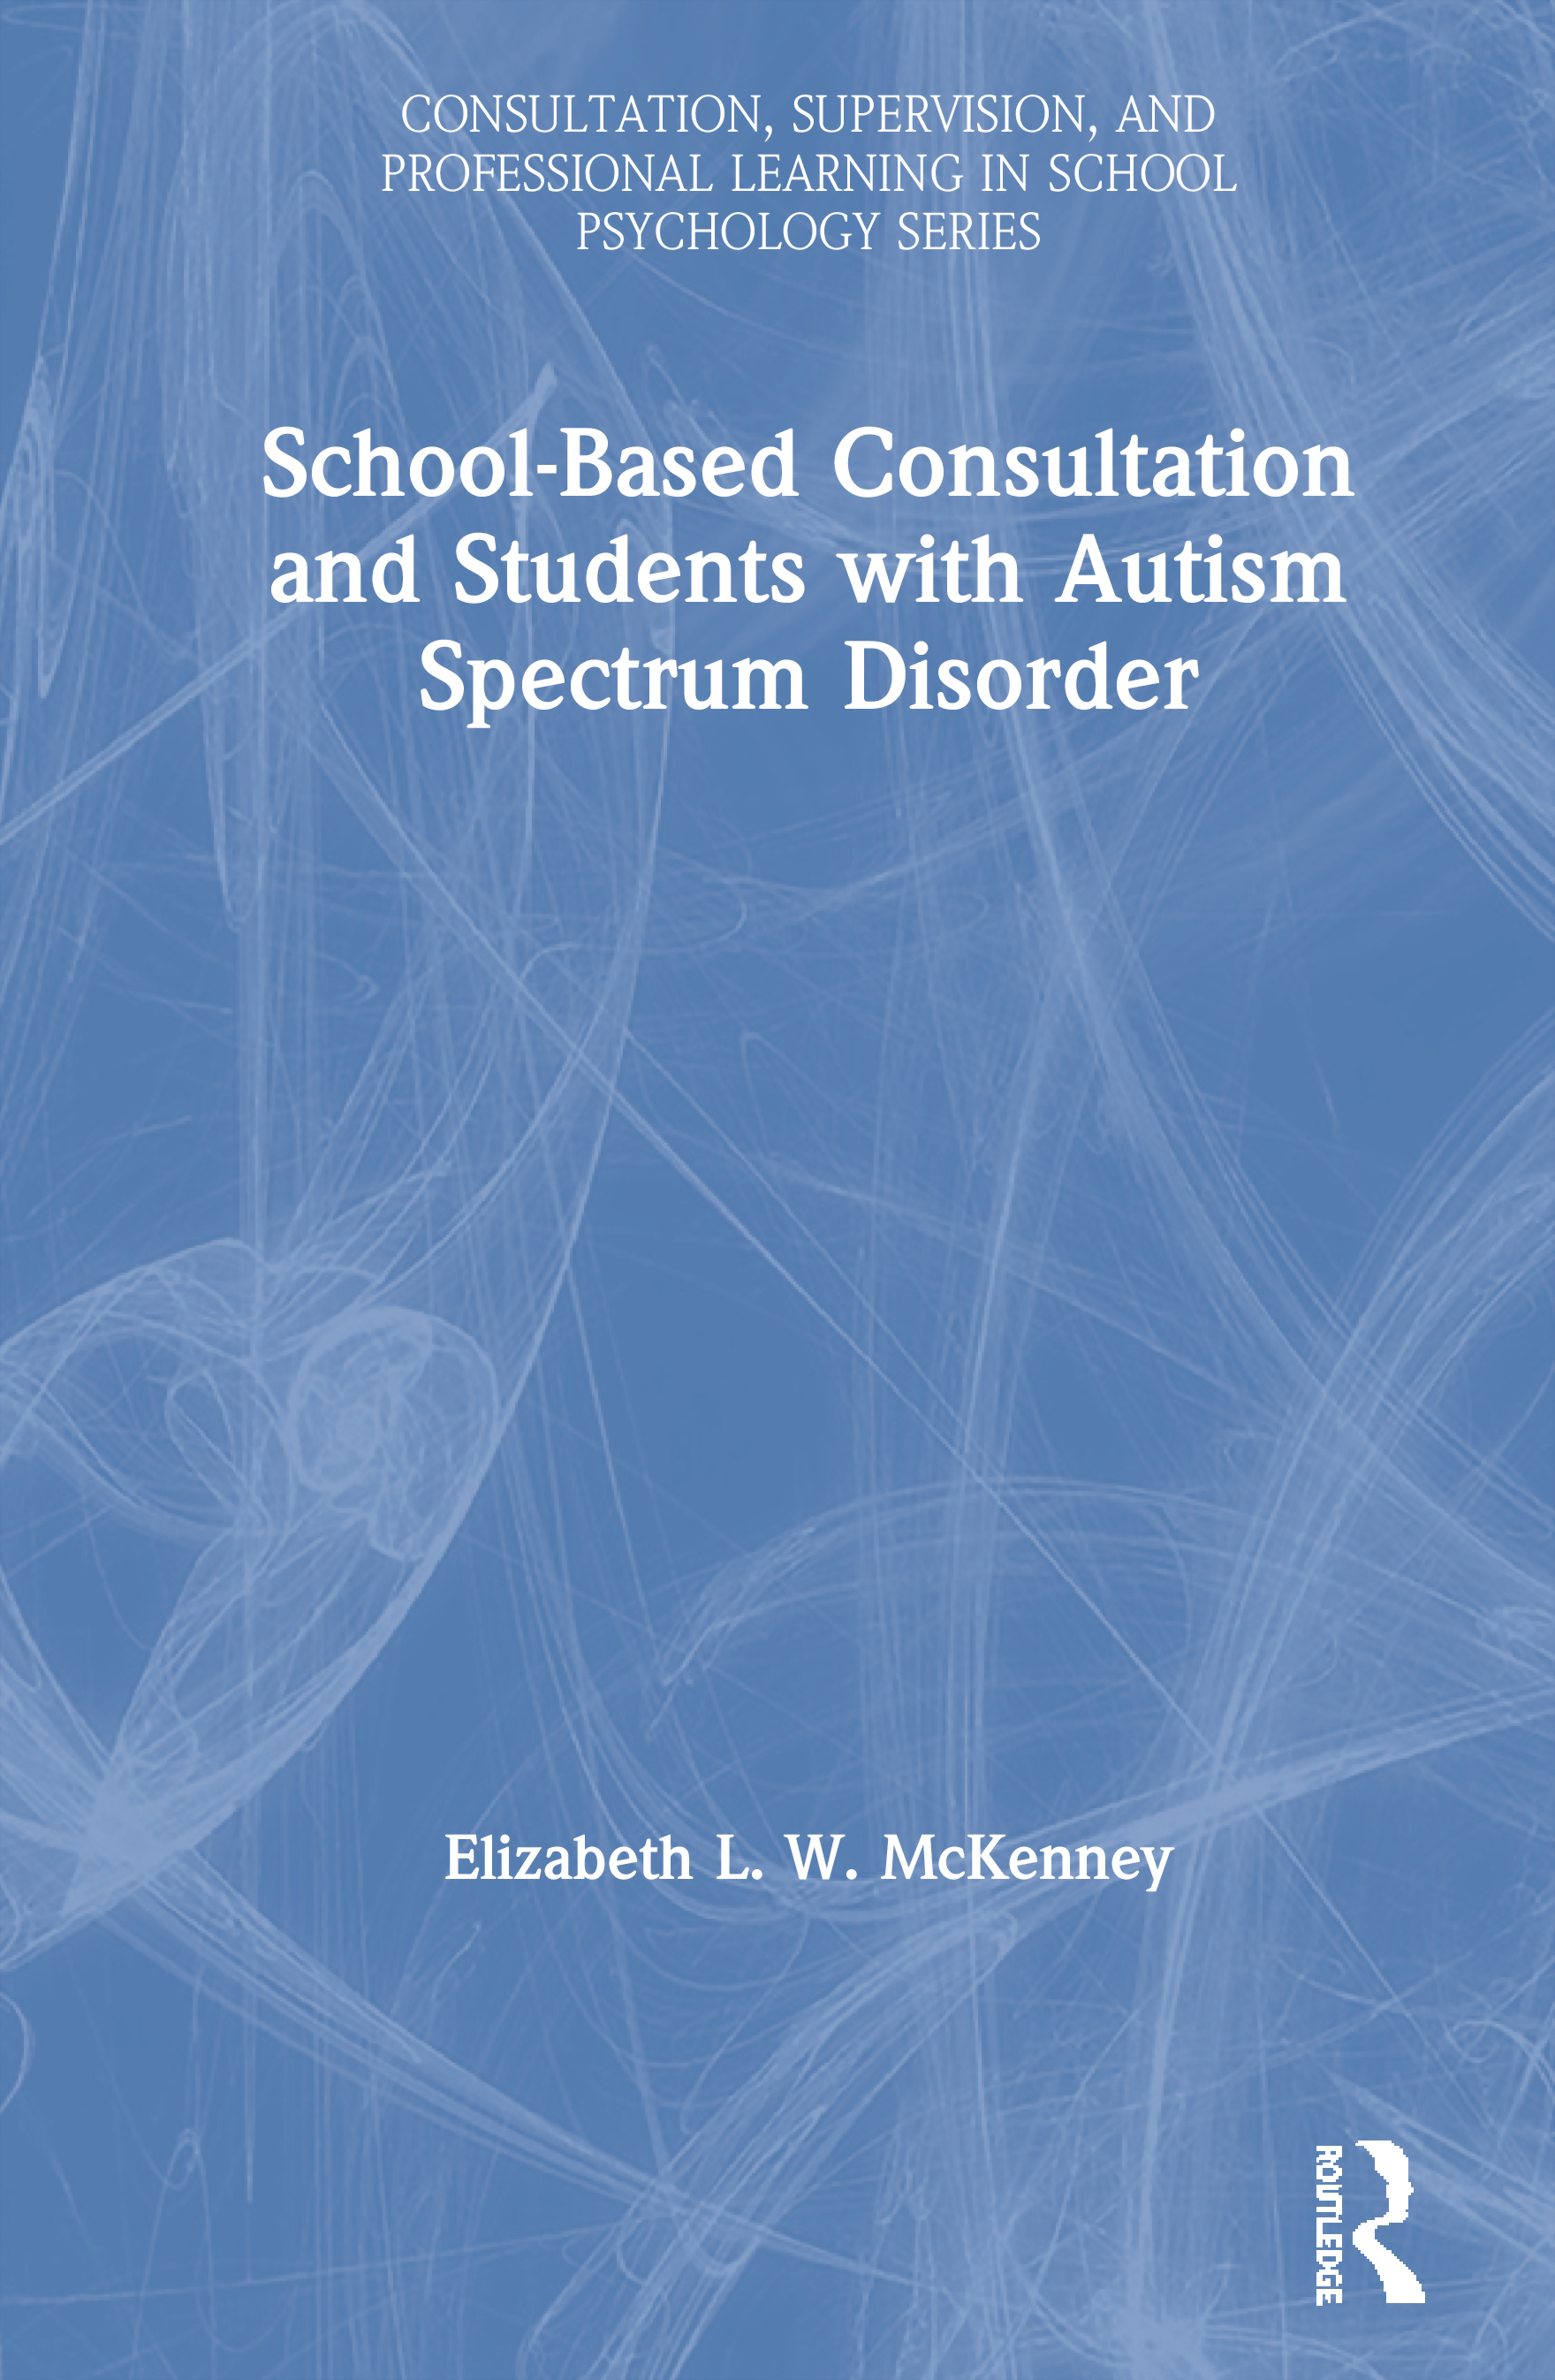 School-Based Consultation and Students with Autism Spectrum Disorder: 1st Edition (Paperback) book cover